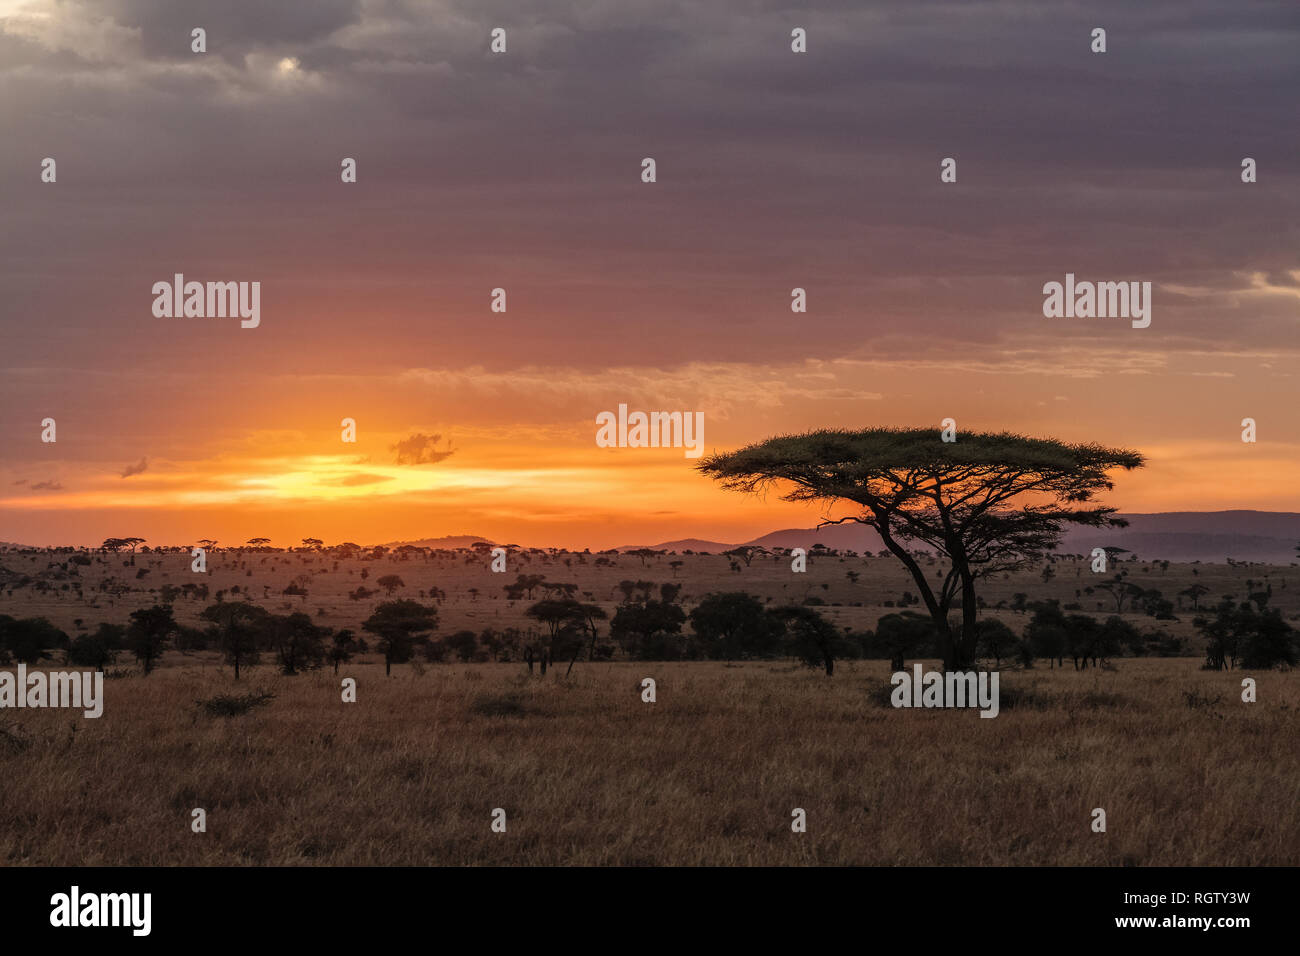 The Serengeti is one of the most popular nature reserves in the world and is also a UNESCO World Heritage Site. It is home to a variety of animals. Stock Photo